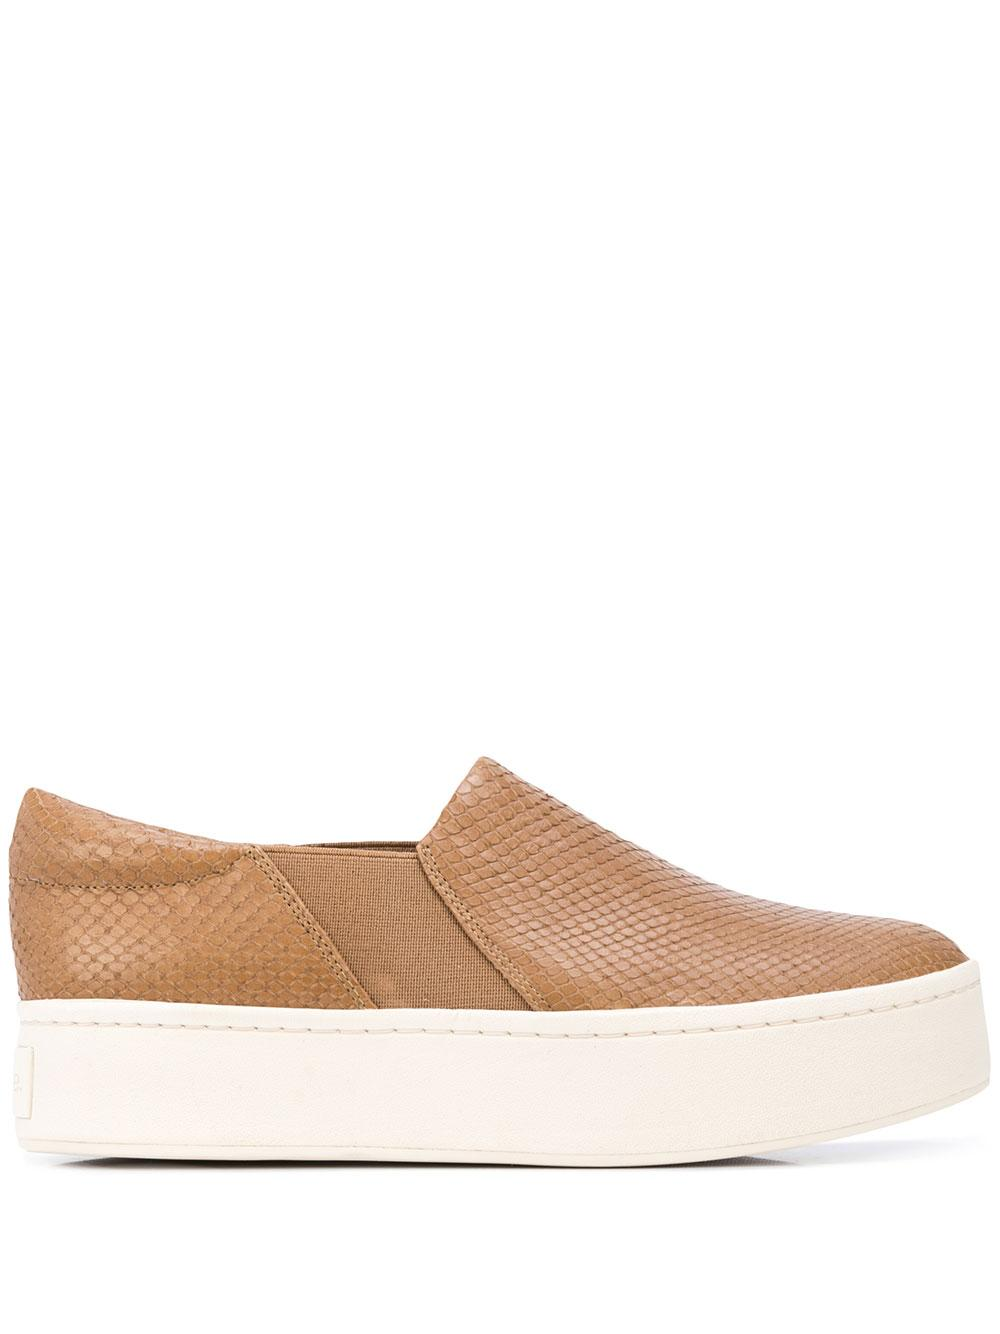 Snake Emb 40MM Leather Platform Slip-On